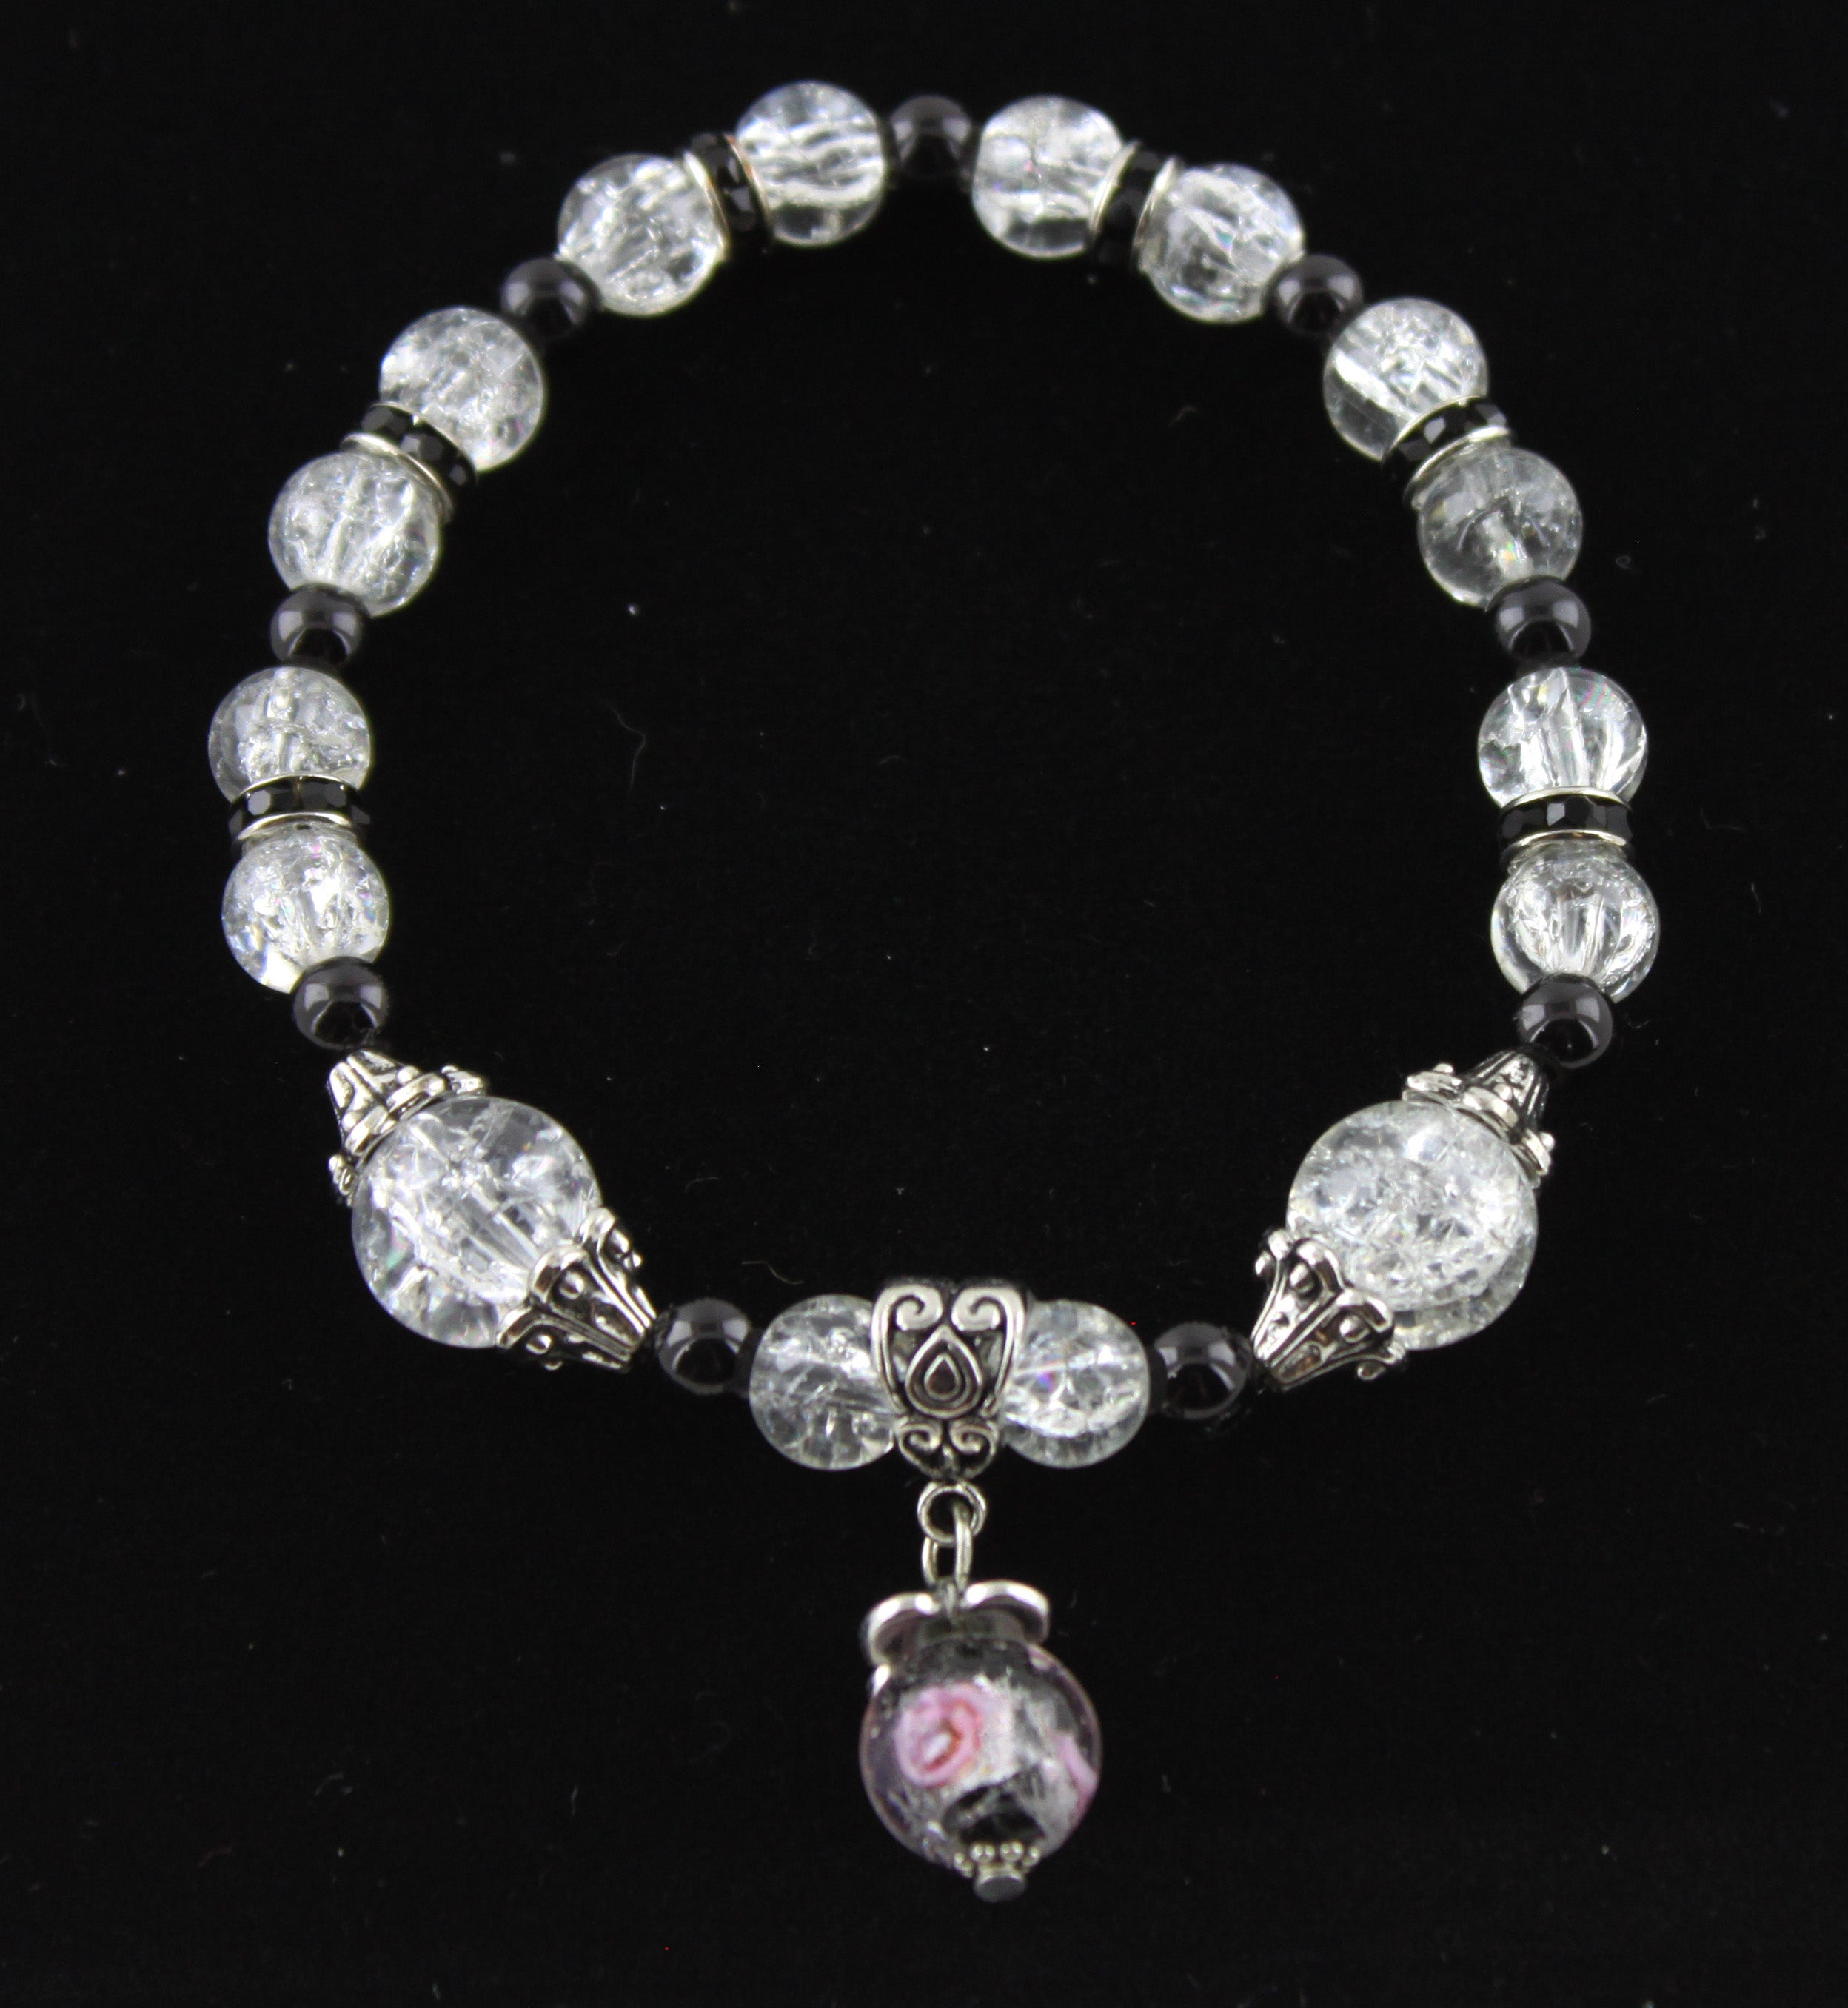 Black & White with a Touch of Pink Pendant Bracelet